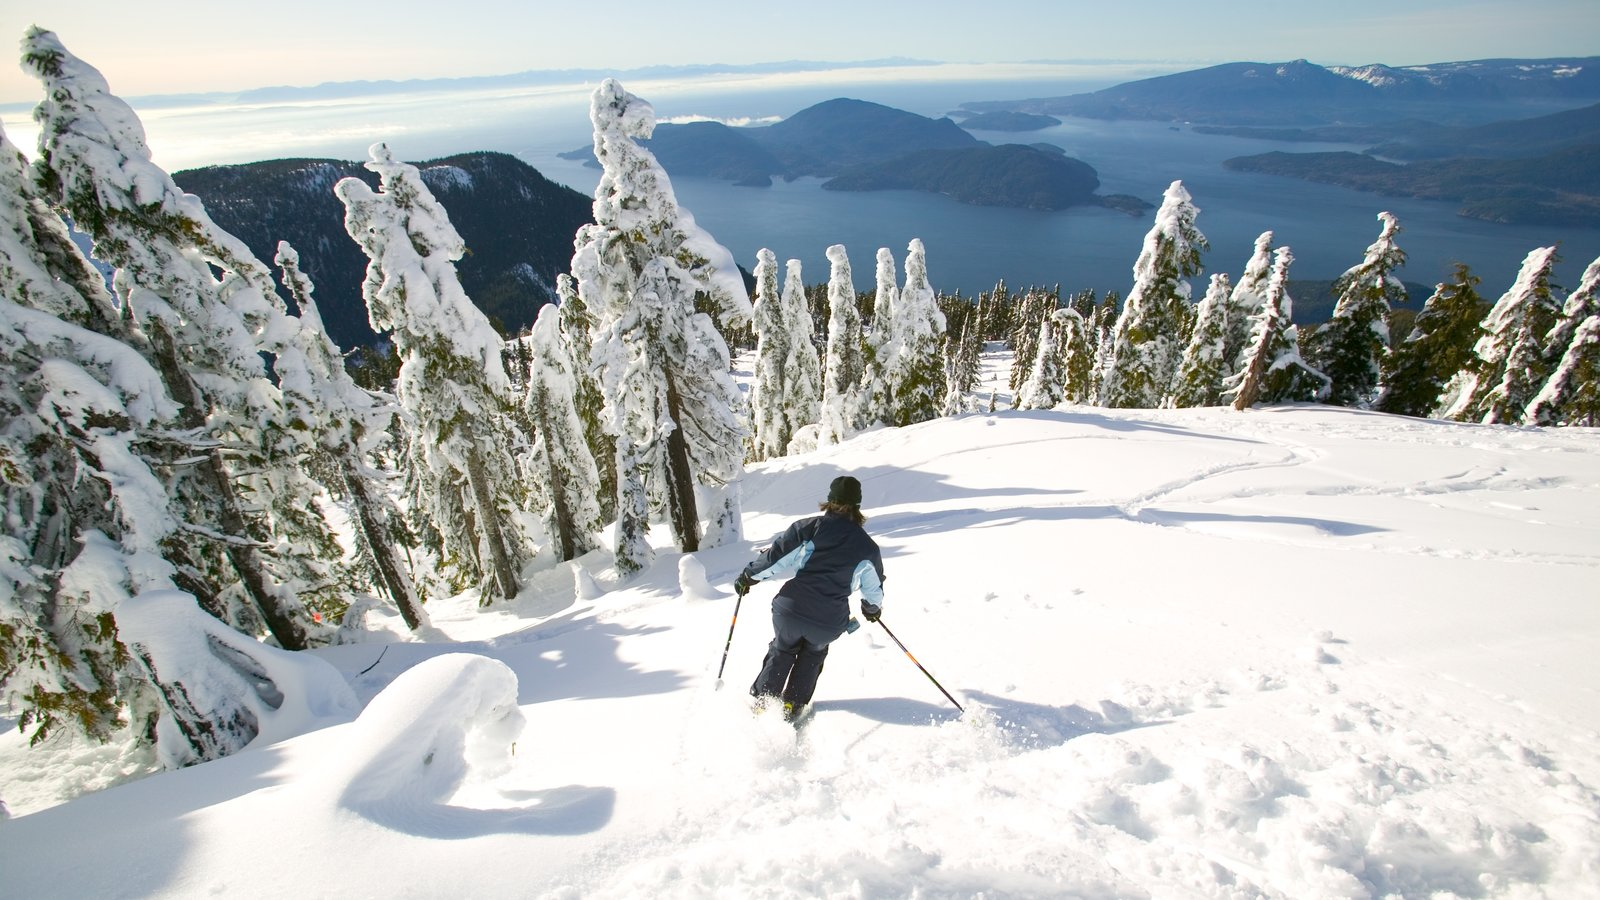 Cypress Mountain which includes landscape views, mountains and snow skiing